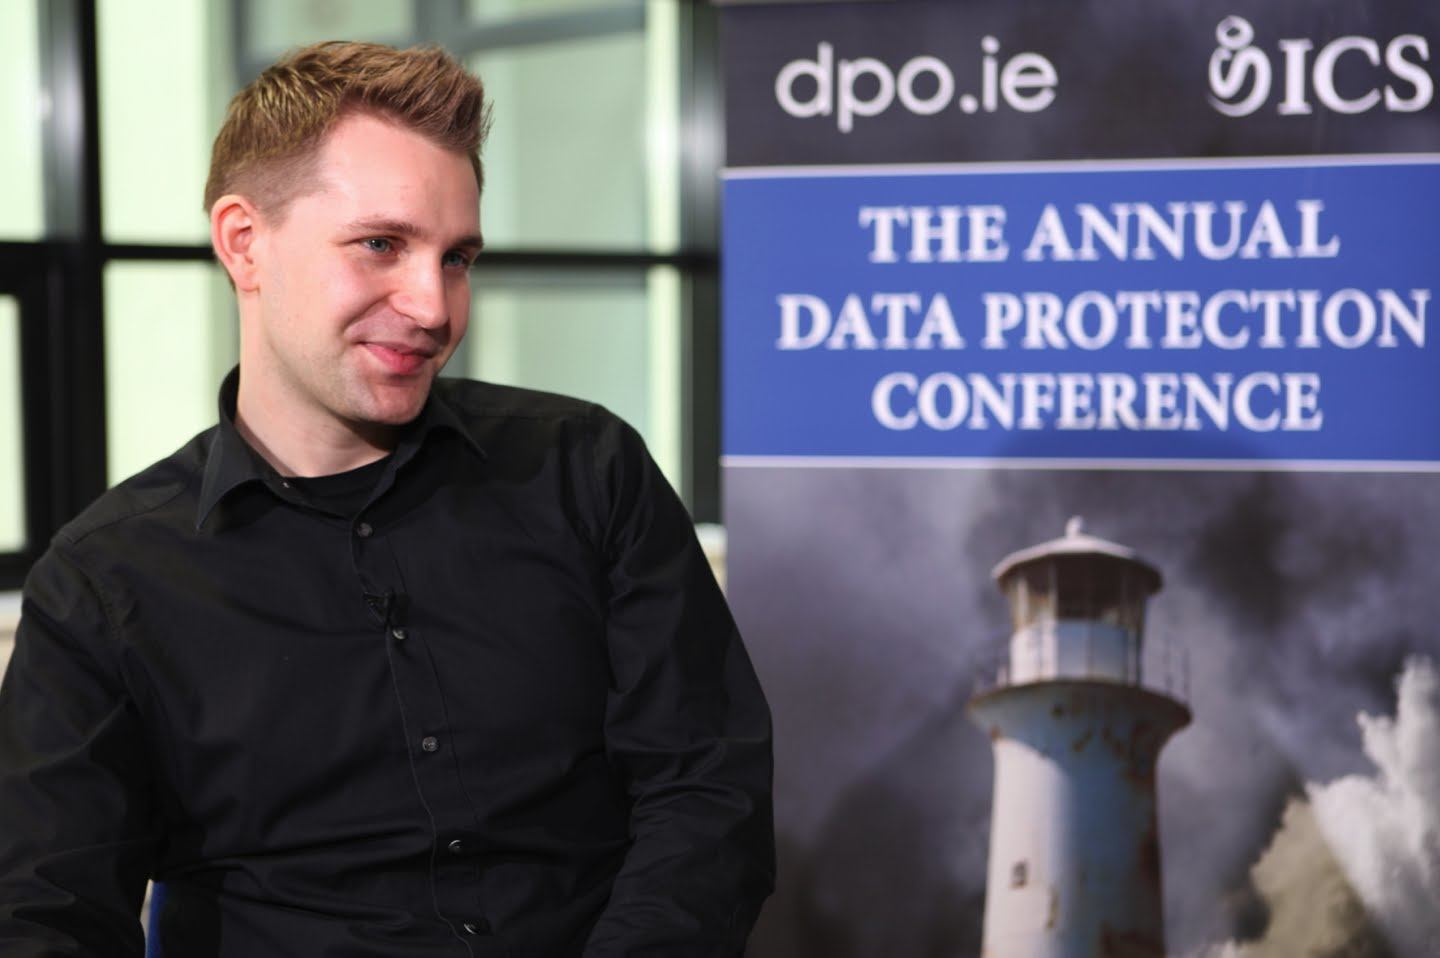 Max attacks: Schrems launches €7bn worth of GDPR cases in Europe